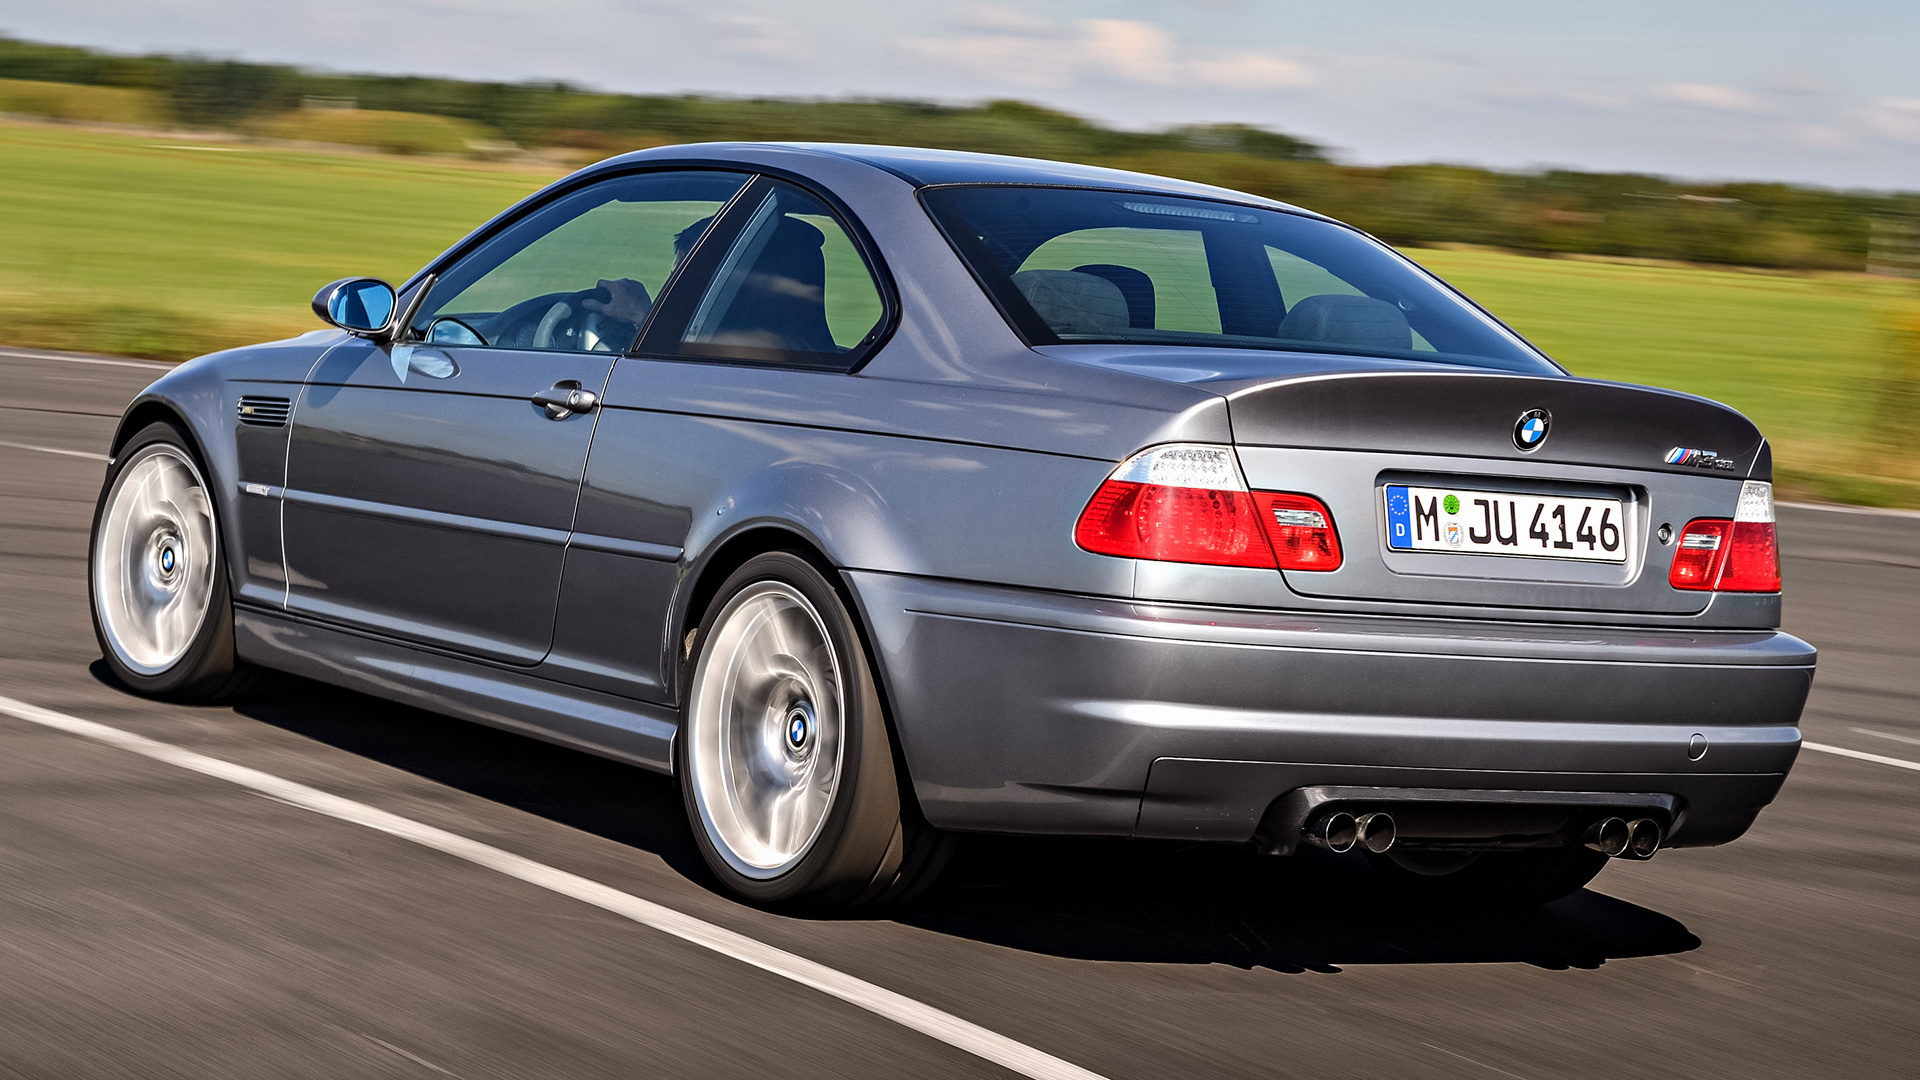 2004 BMW M3 CSL Coupe - Wallpapers and HD Images | Car Pixel